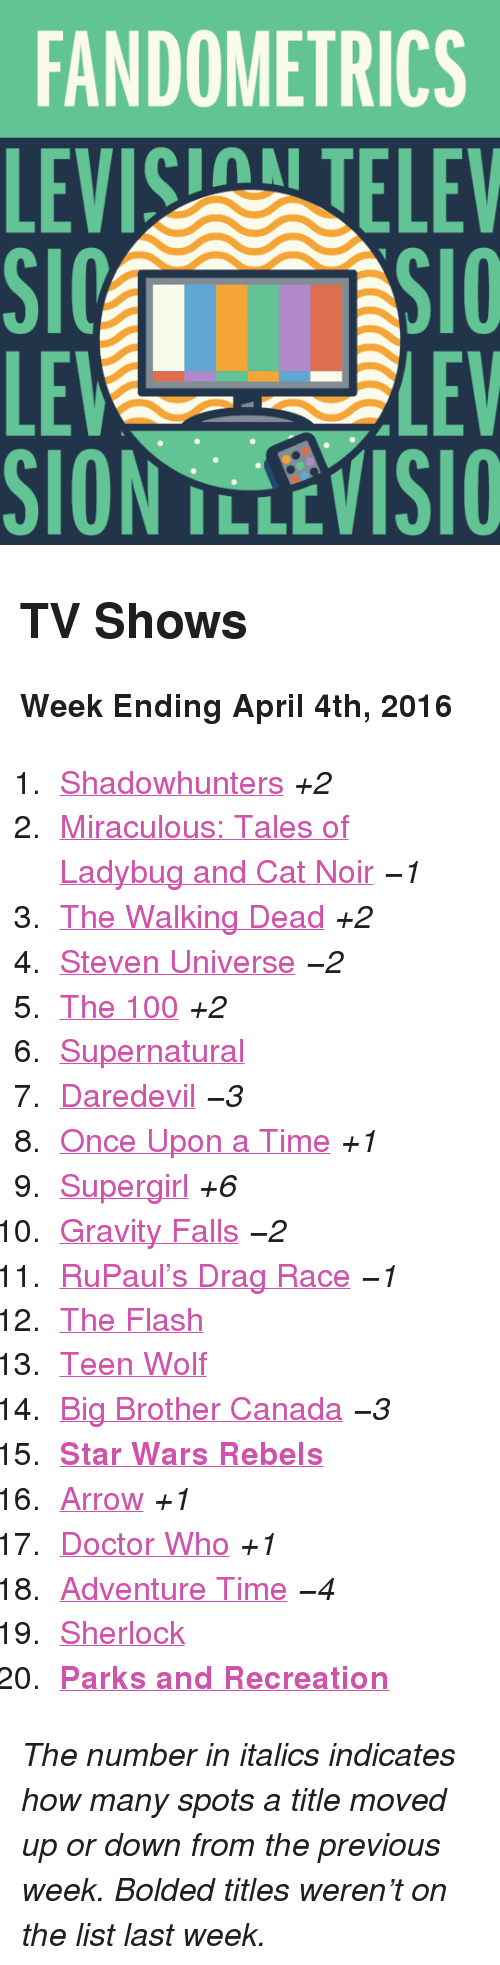 """Parks and Recreation: FANDOMETRICS  LEVIS TELEV  LE  SION TLLEVISIO  LEV <h2>TV Shows</h2><p><b>Week Ending April 4th, 2016</b></p><ol><li><a href=""""http://www.tumblr.com/search/shadowhunters"""">Shadowhunters</a><i>+2</i></li>  <li><a href=""""http://www.tumblr.com/search/miraculous%20ladybug"""">Miraculous: Tales of Ladybug and Cat Noir</a><i>−1</i></li>  <li><a href=""""http://www.tumblr.com/search/the%20walking%20dead"""">The Walking Dead</a><i>+2</i></li>  <li><a href=""""http://www.tumblr.com/search/steven%20universe"""">Steven Universe</a><i>−2</i></li>  <li><a href=""""http://www.tumblr.com/search/the%20100"""">The 100</a><i>+2</i></li>  <li><a href=""""http://www.tumblr.com/search/supernatural"""">Supernatural</a></li>  <li><a href=""""http://www.tumblr.com/search/daredevil"""">Daredevil</a><i>−3</i></li>  <li><a href=""""http://www.tumblr.com/search/ouat"""">Once Upon a Time</a><i>+1</i></li>  <li><a href=""""http://www.tumblr.com/search/supergirl"""">Supergirl</a><i>+6</i></li>  <li><a href=""""http://www.tumblr.com/search/gravity%20falls"""">Gravity Falls</a><i>−2</i></li>  <li><a href=""""http://www.tumblr.com/search/rupaul's%20drag%20race"""">RuPaul&rsquo;s Drag Race</a><i>−1</i></li>  <li><a href=""""http://www.tumblr.com/search/the%20flash"""">The Flash</a></li>  <li><a href=""""http://www.tumblr.com/search/teen%20wolf"""">Teen Wolf</a></li>  <li><a href=""""http://www.tumblr.com/search/bbcan4"""">Big Brother Canada</a><i>−3</i></li>  <li><a href=""""http://www.tumblr.com/search/star%20wars%20rebels""""><b>Star Wars Rebels</b></a></li>  <li><a href=""""http://www.tumblr.com/search/arrow"""">Arrow</a><i>+1</i></li>  <li><a href=""""http://www.tumblr.com/search/doctor%20who"""">Doctor Who</a><i>+1</i></li>  <li><a href=""""http://www.tumblr.com/search/adventure%20time"""">Adventure Time</a><i>−4</i></li>  <li><a href=""""http://www.tumblr.com/search/sherlock"""">Sherlock</a></li>  <li><a href=""""http://www.tumblr.com/search/parks%20and%20recreation""""><b>Parks and Recreation</b></a></li></ol><p><i>The number in italics indicates how many spots a title moved up or do"""